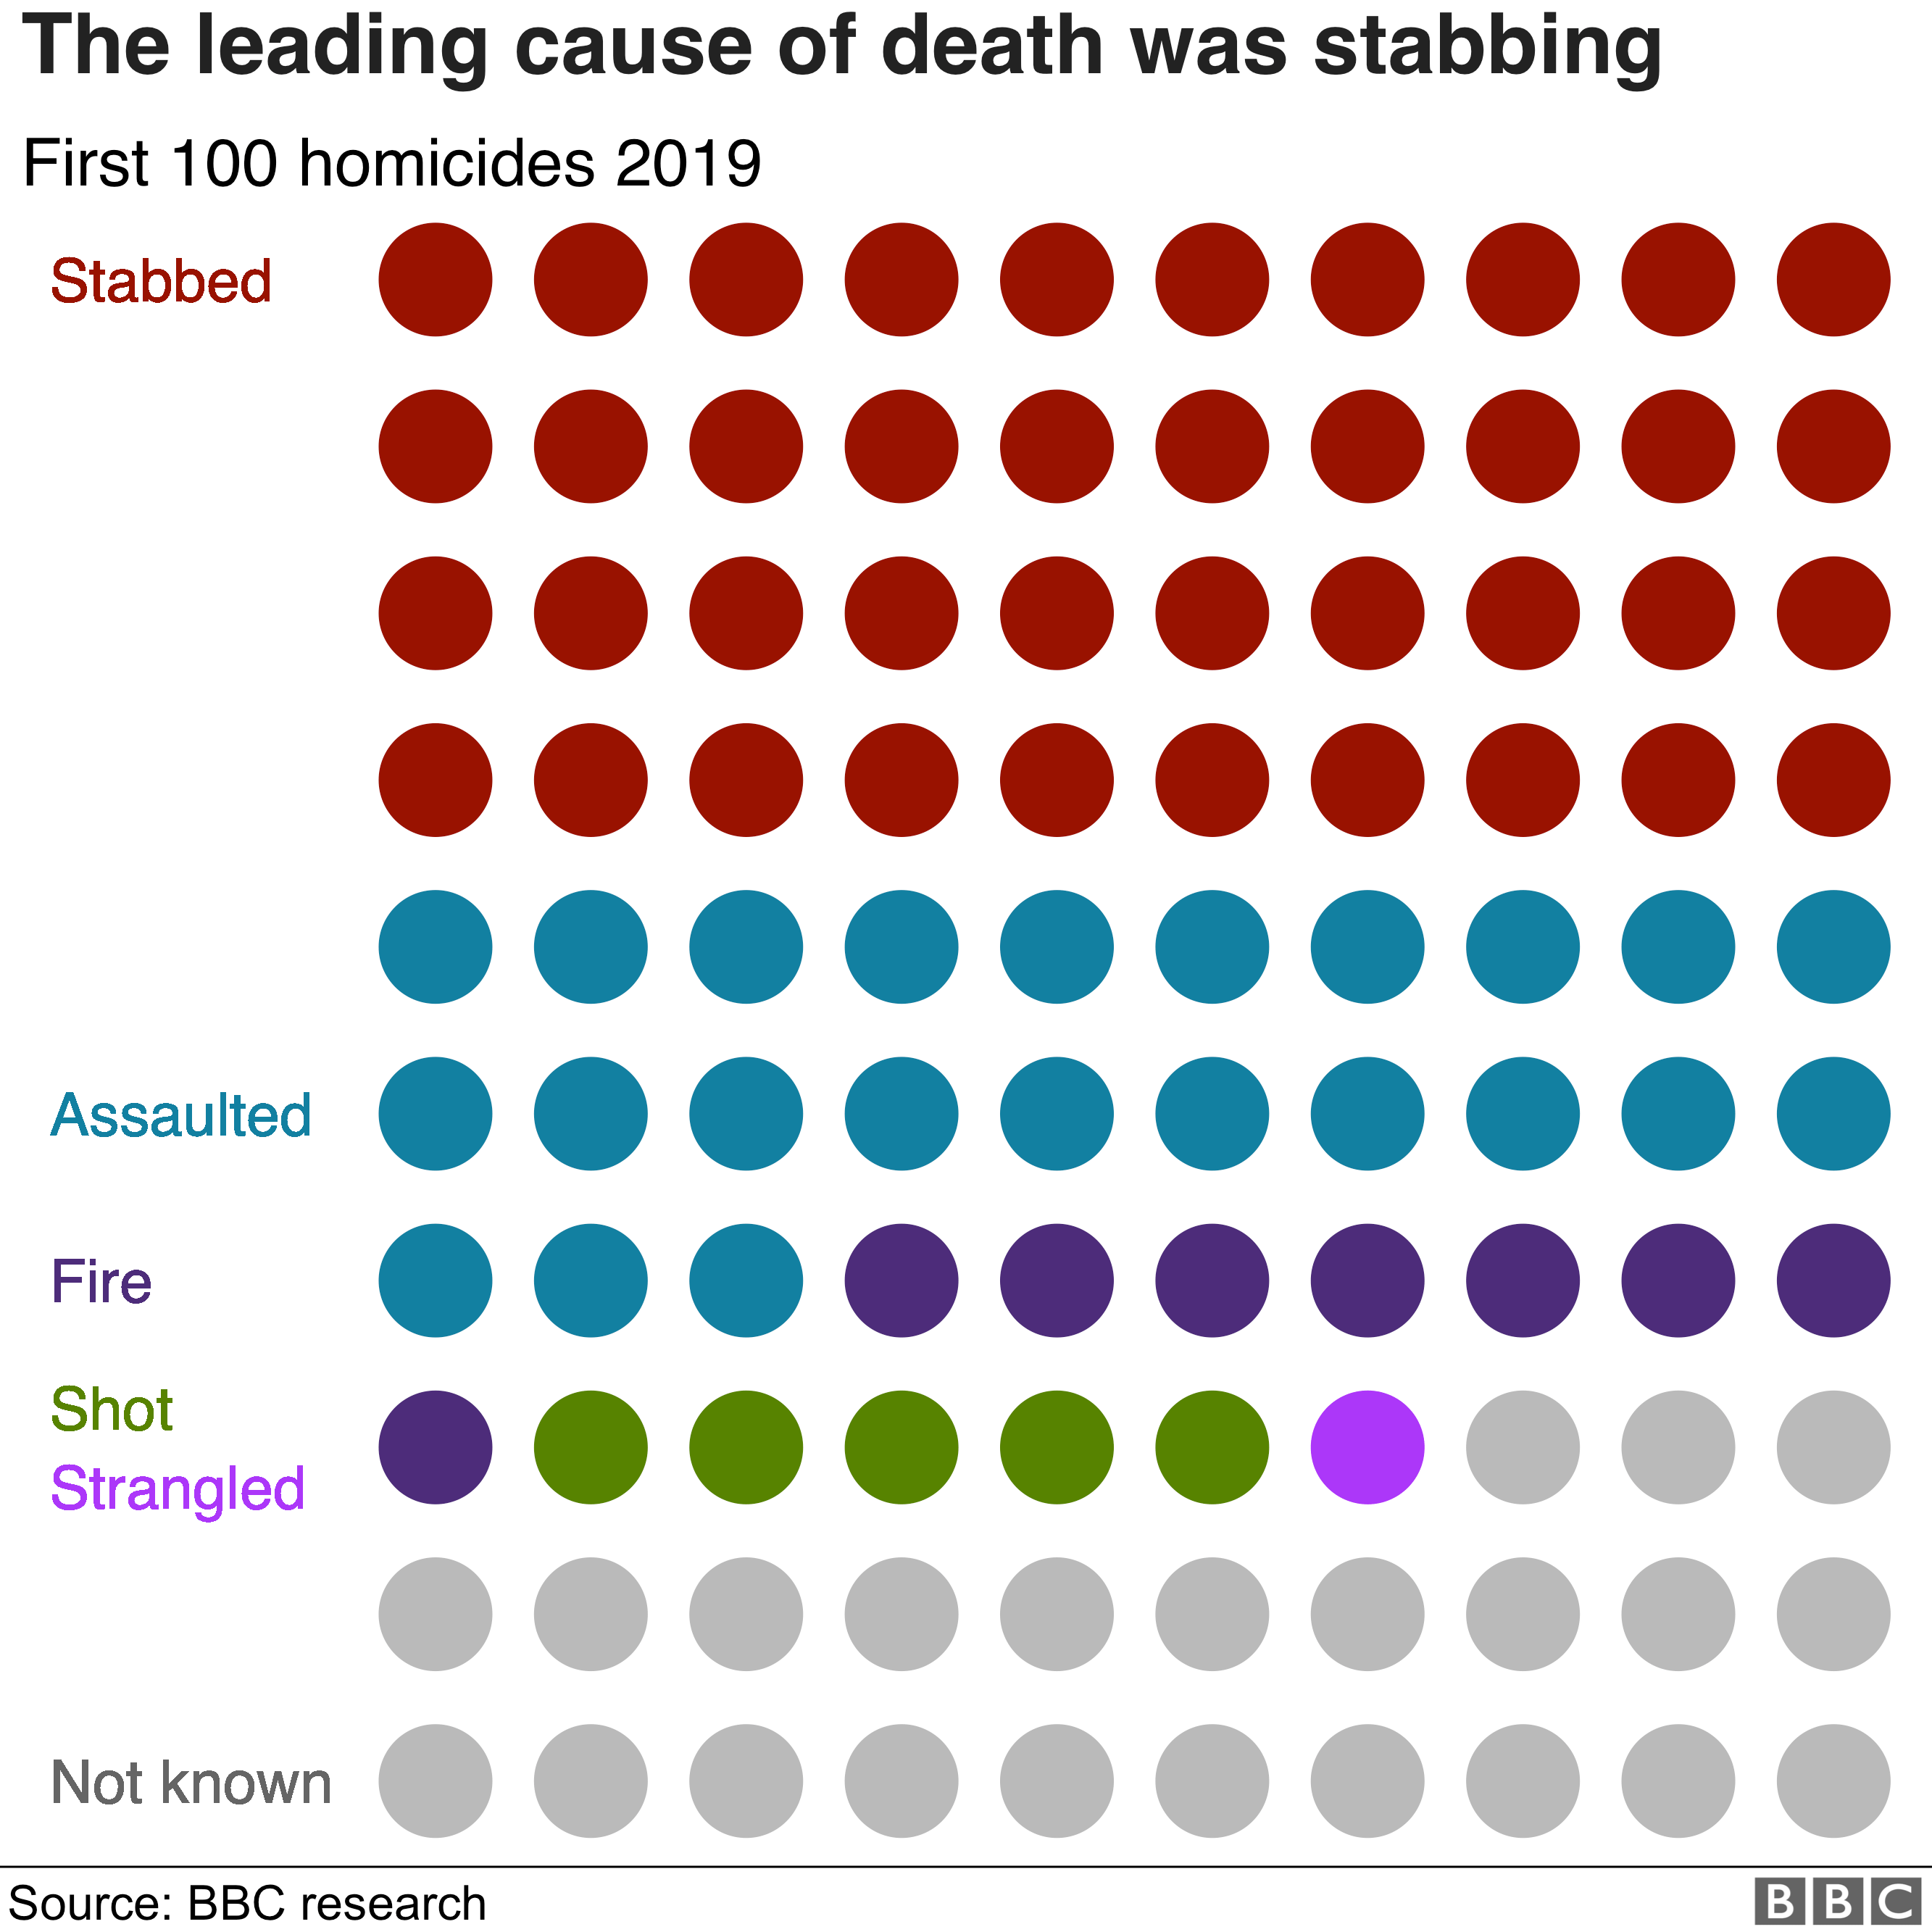 The leading cause of death was stabbing